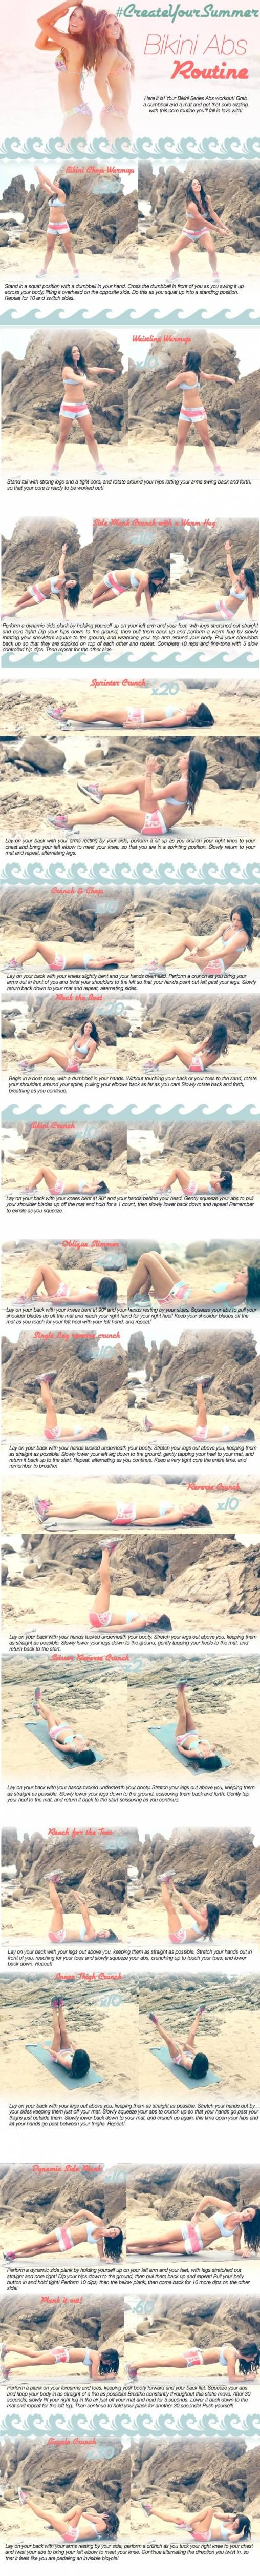 Bikini Fitness - Page 90 of 5316 - Fitness To Be Beach Ready                                                                                                                                                                                 More